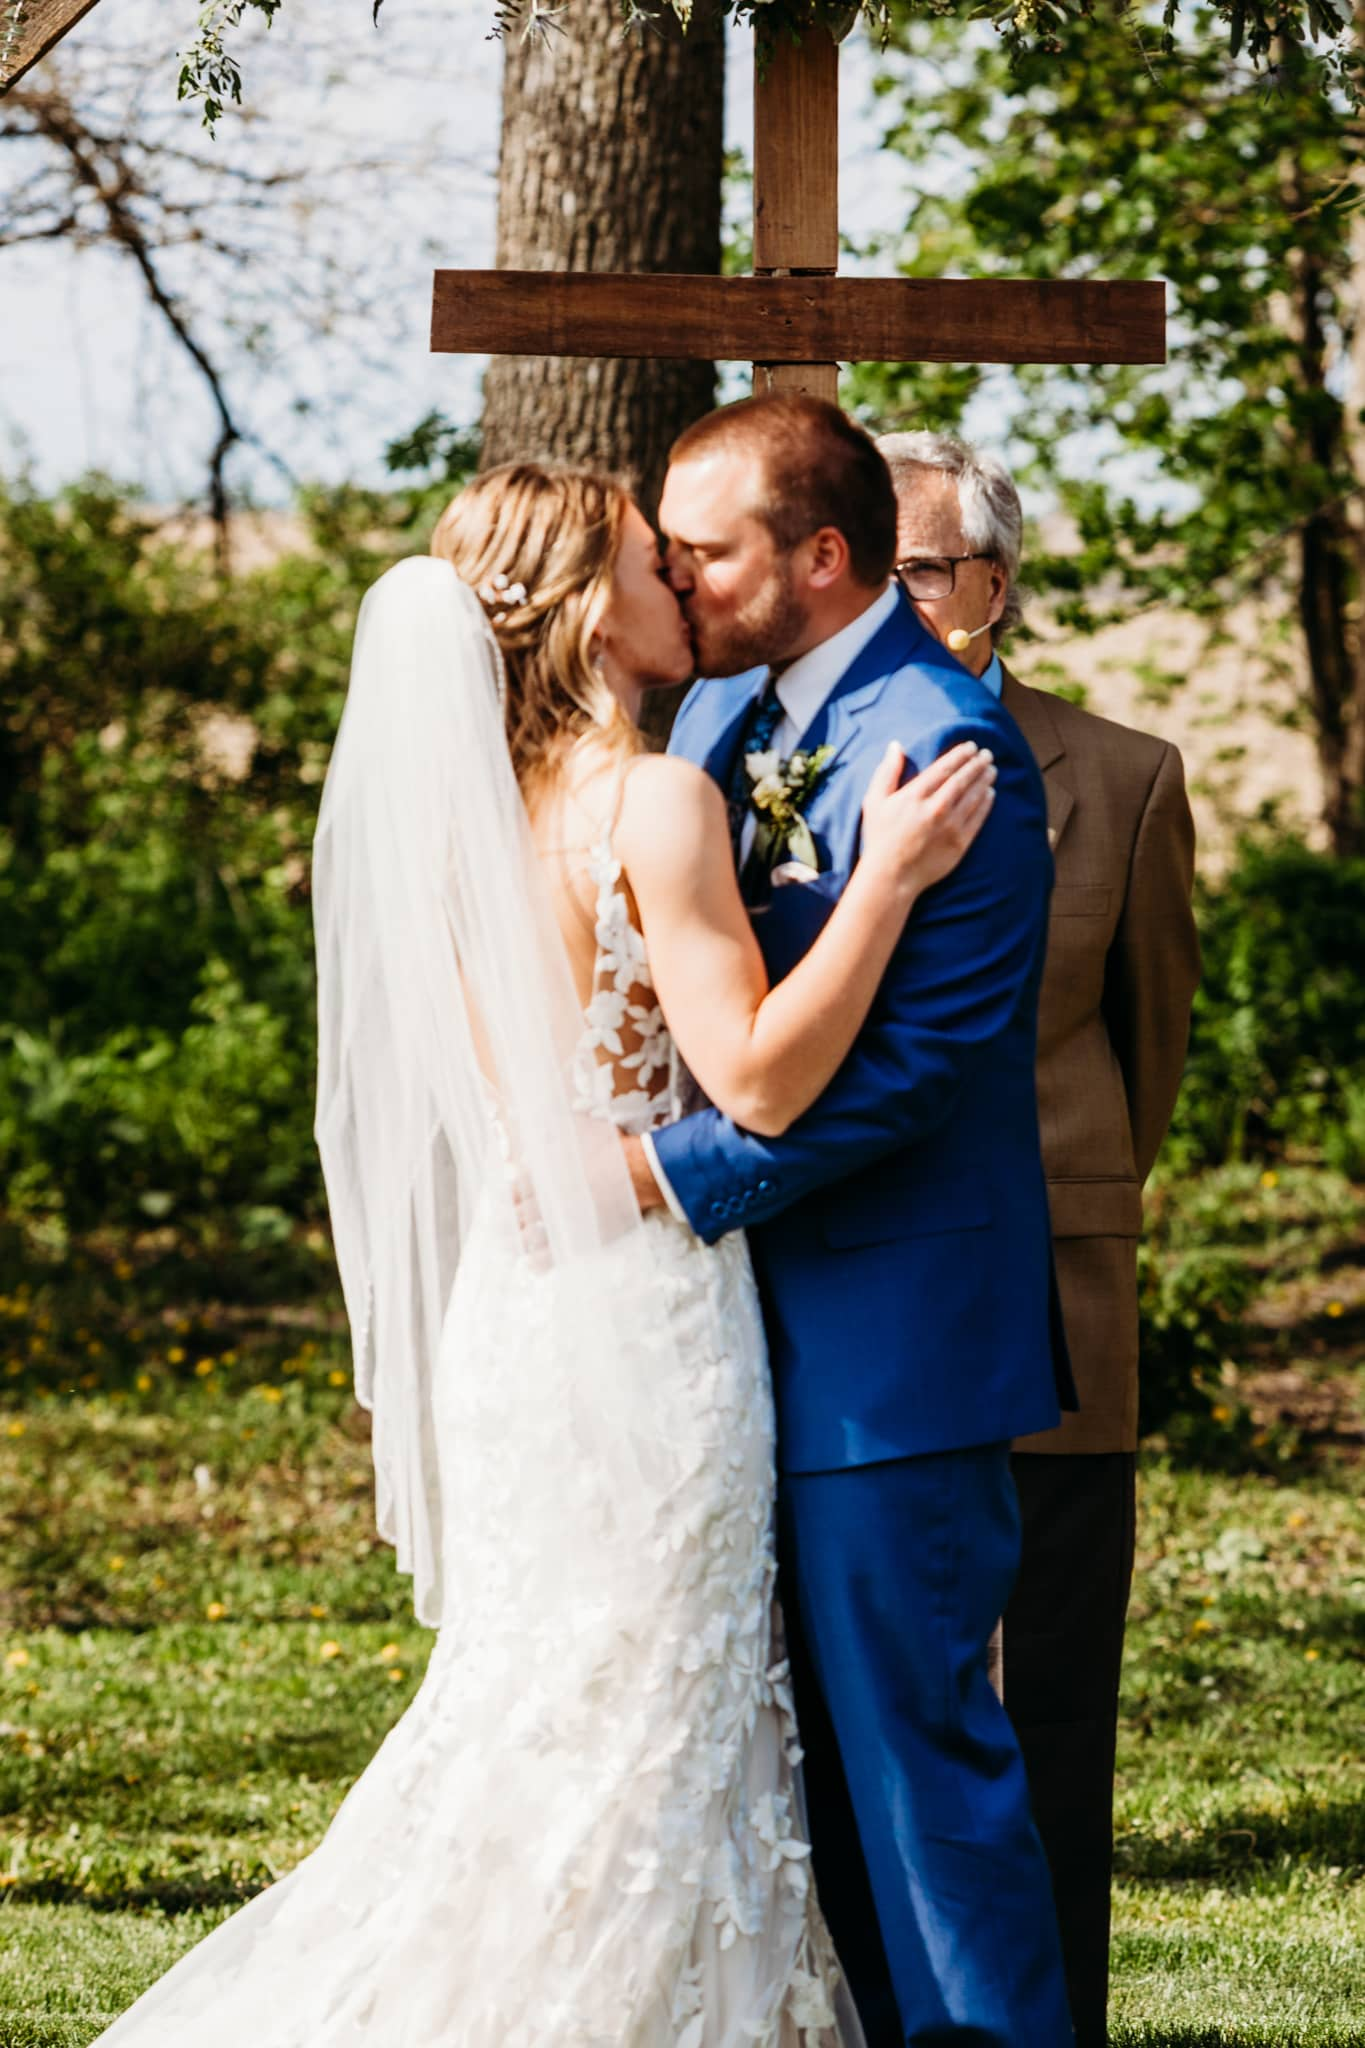 Couple has their first kiss during their ceremony at their Schroeder Farm wedding